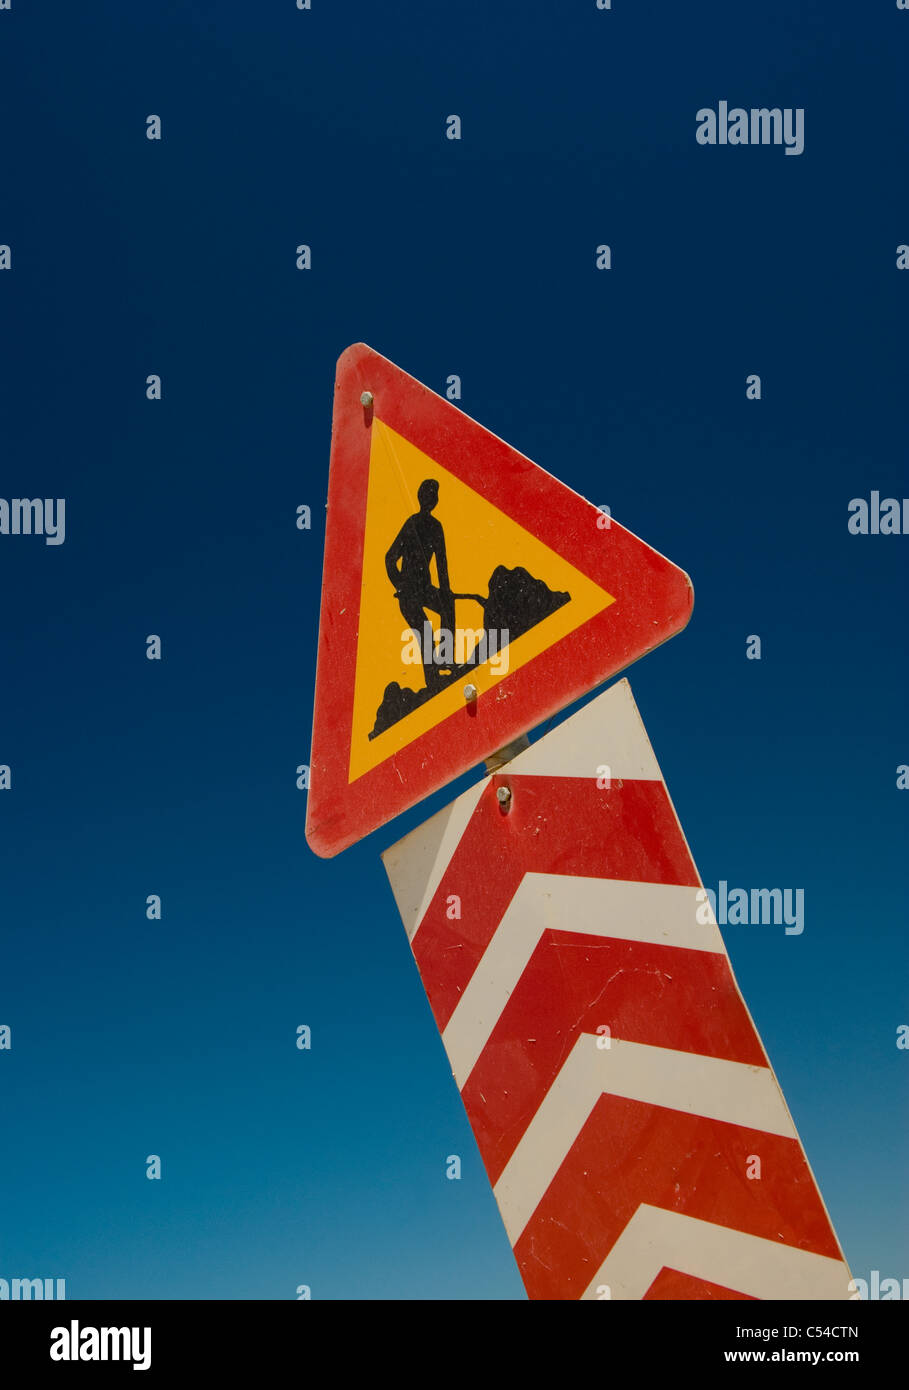 Greek / European men at work sign, conceptual use could include Greek infastructure maintainance, employment, Jobs. - Stock Image